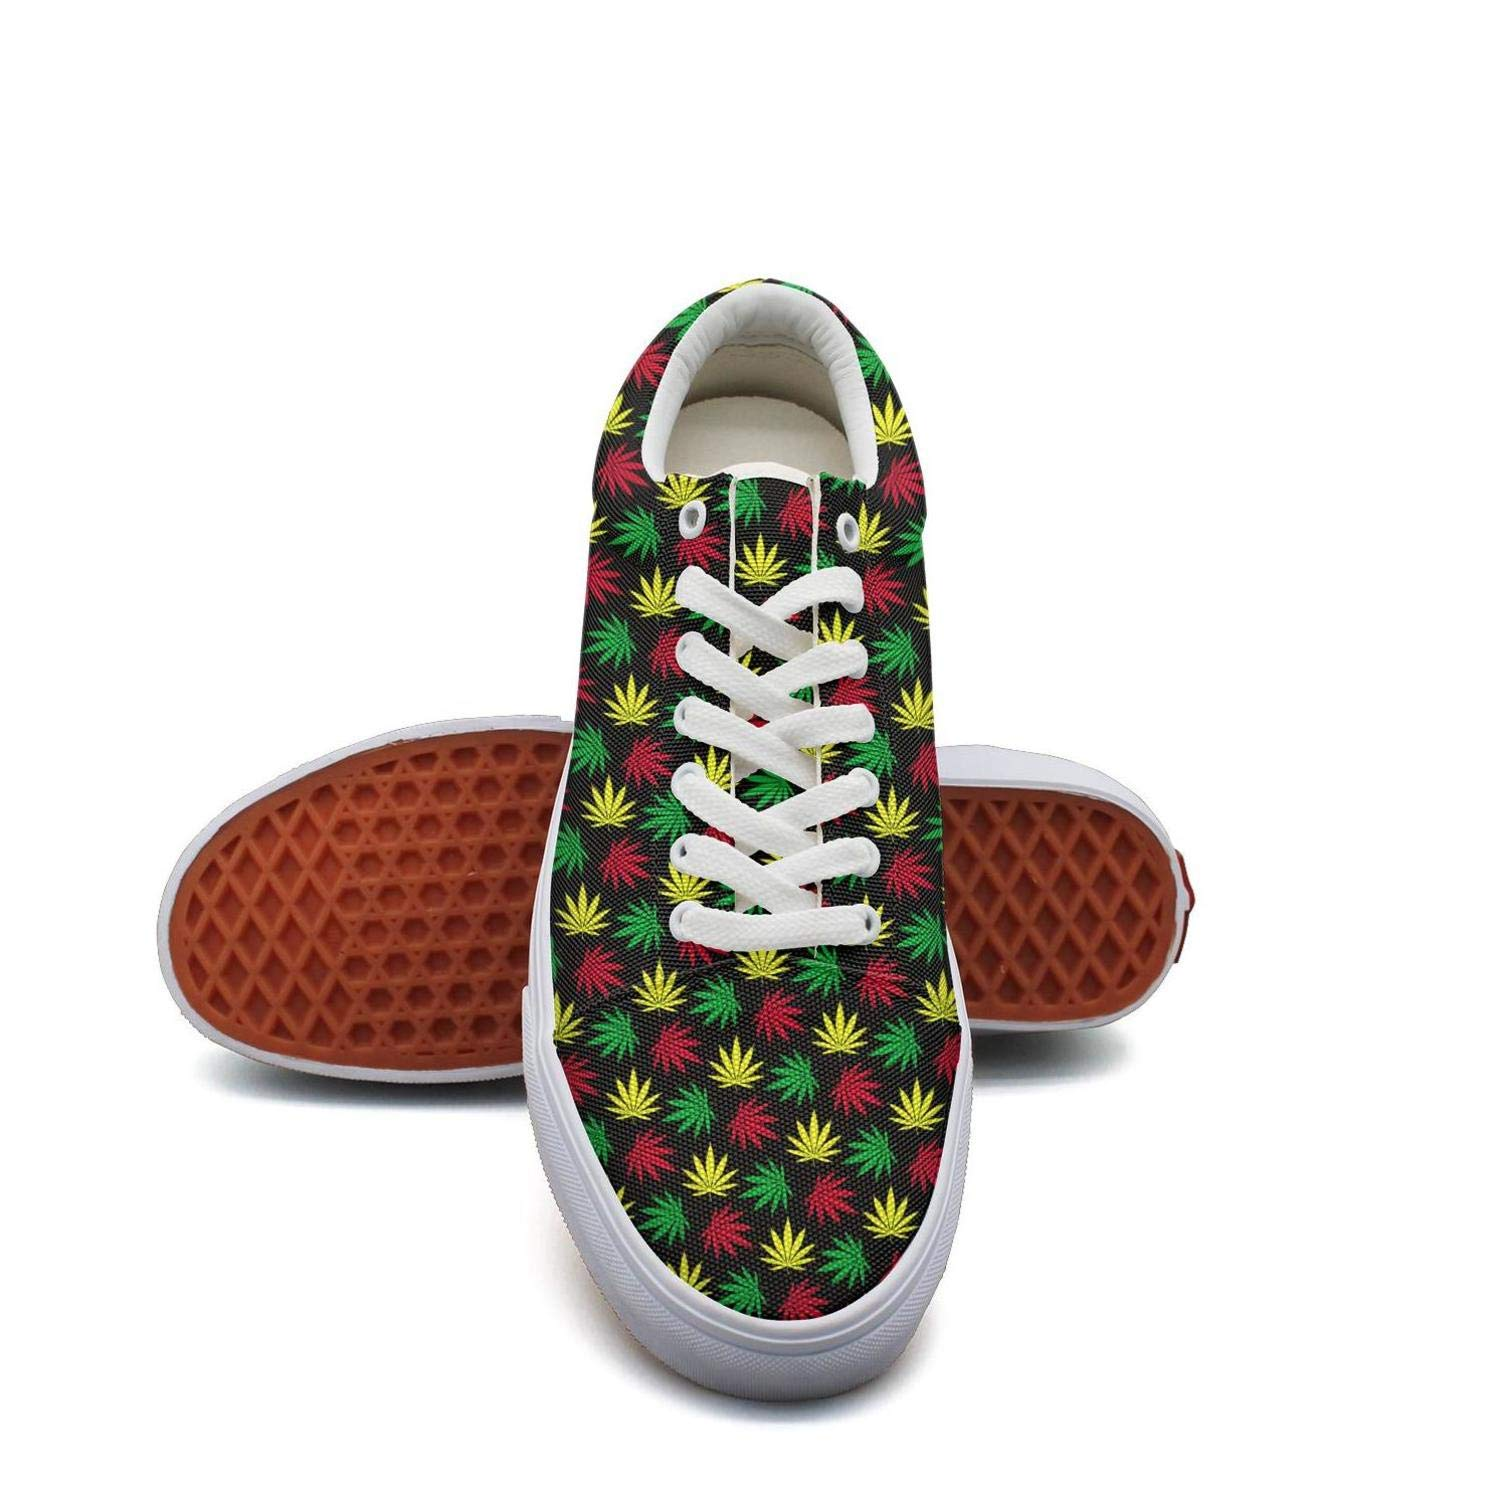 Opr7 Colorful Cannabis Plants Women Lace-Up Skate Shoes Canvas Upper Loafer Rubber Sole